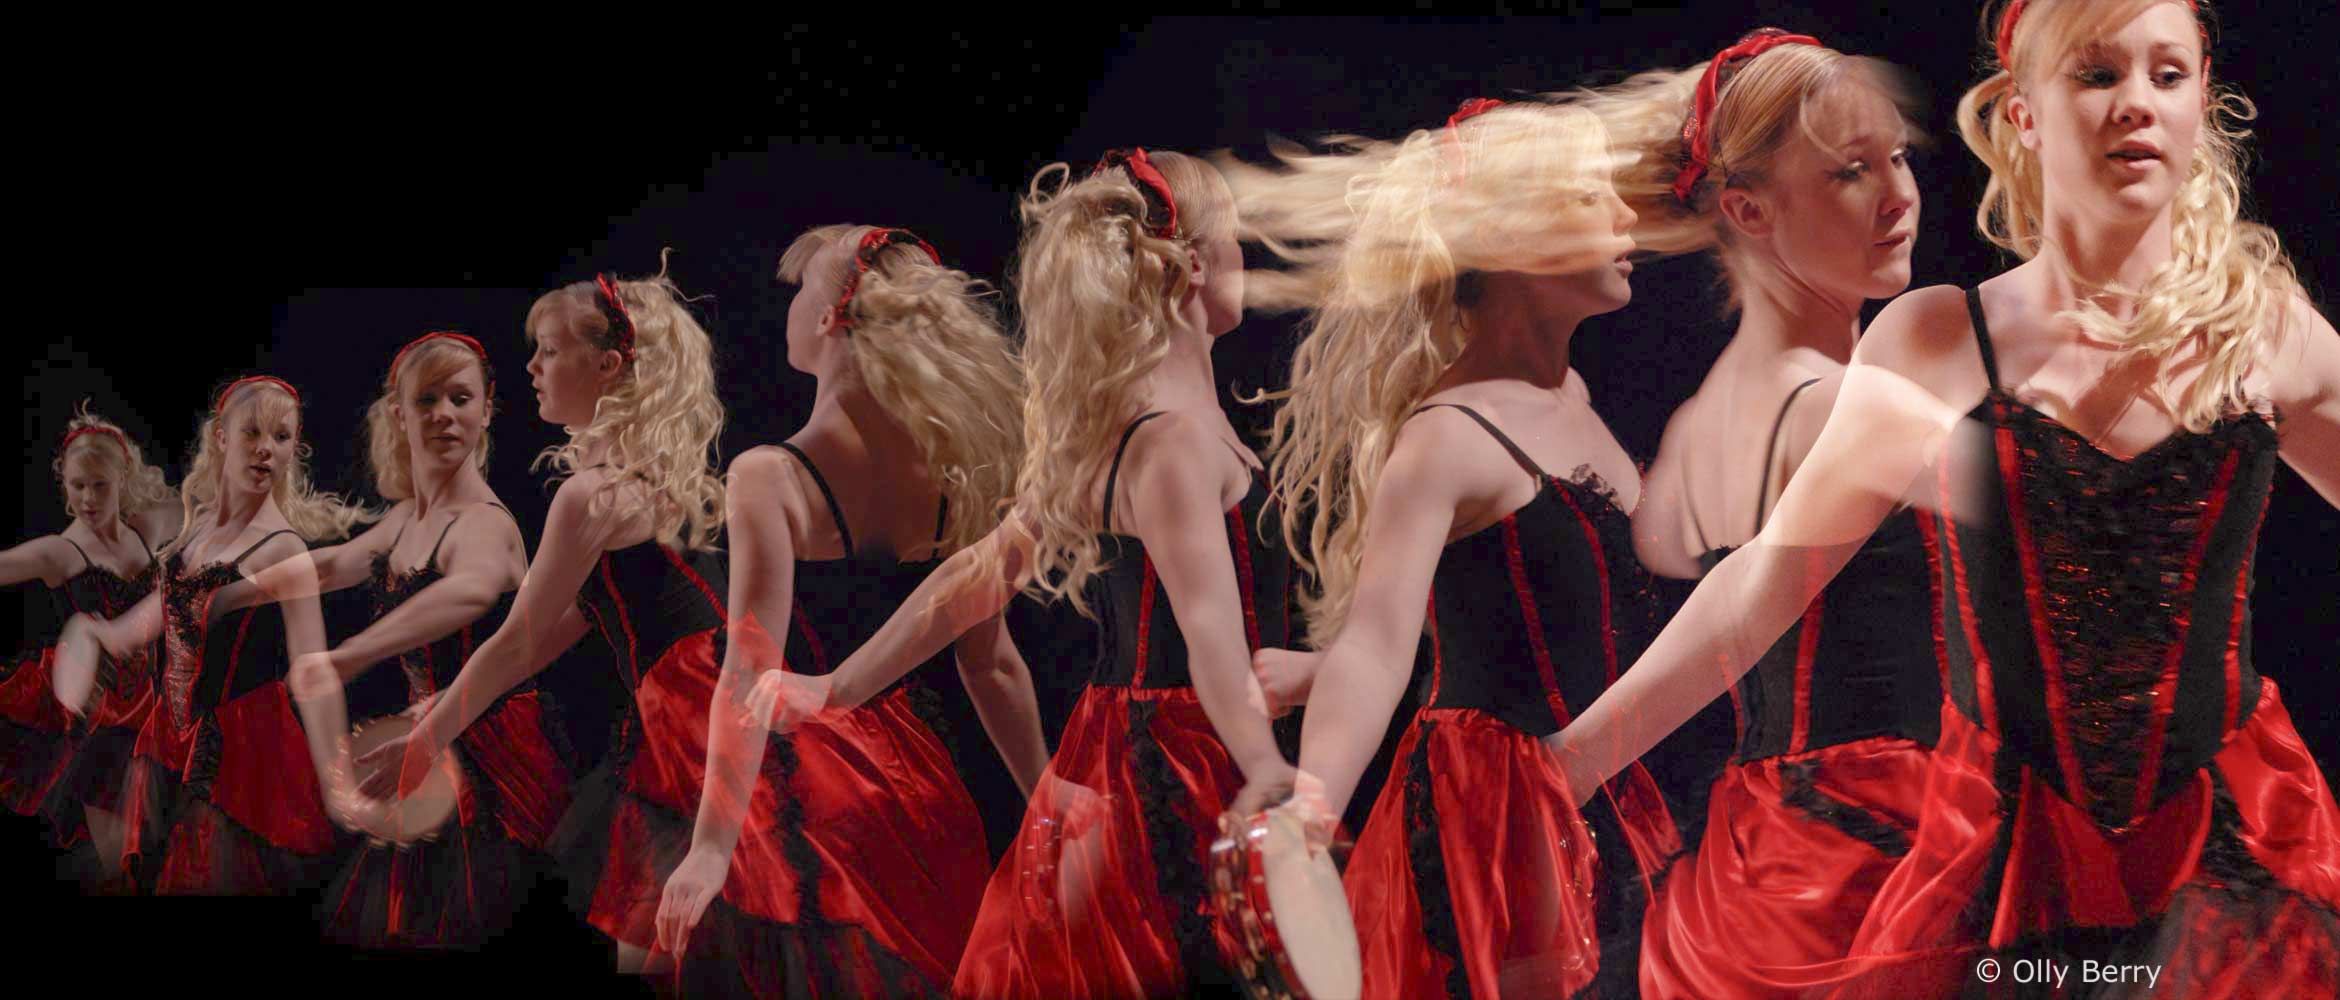 Montage of Dancer spinning. © Olly Berry